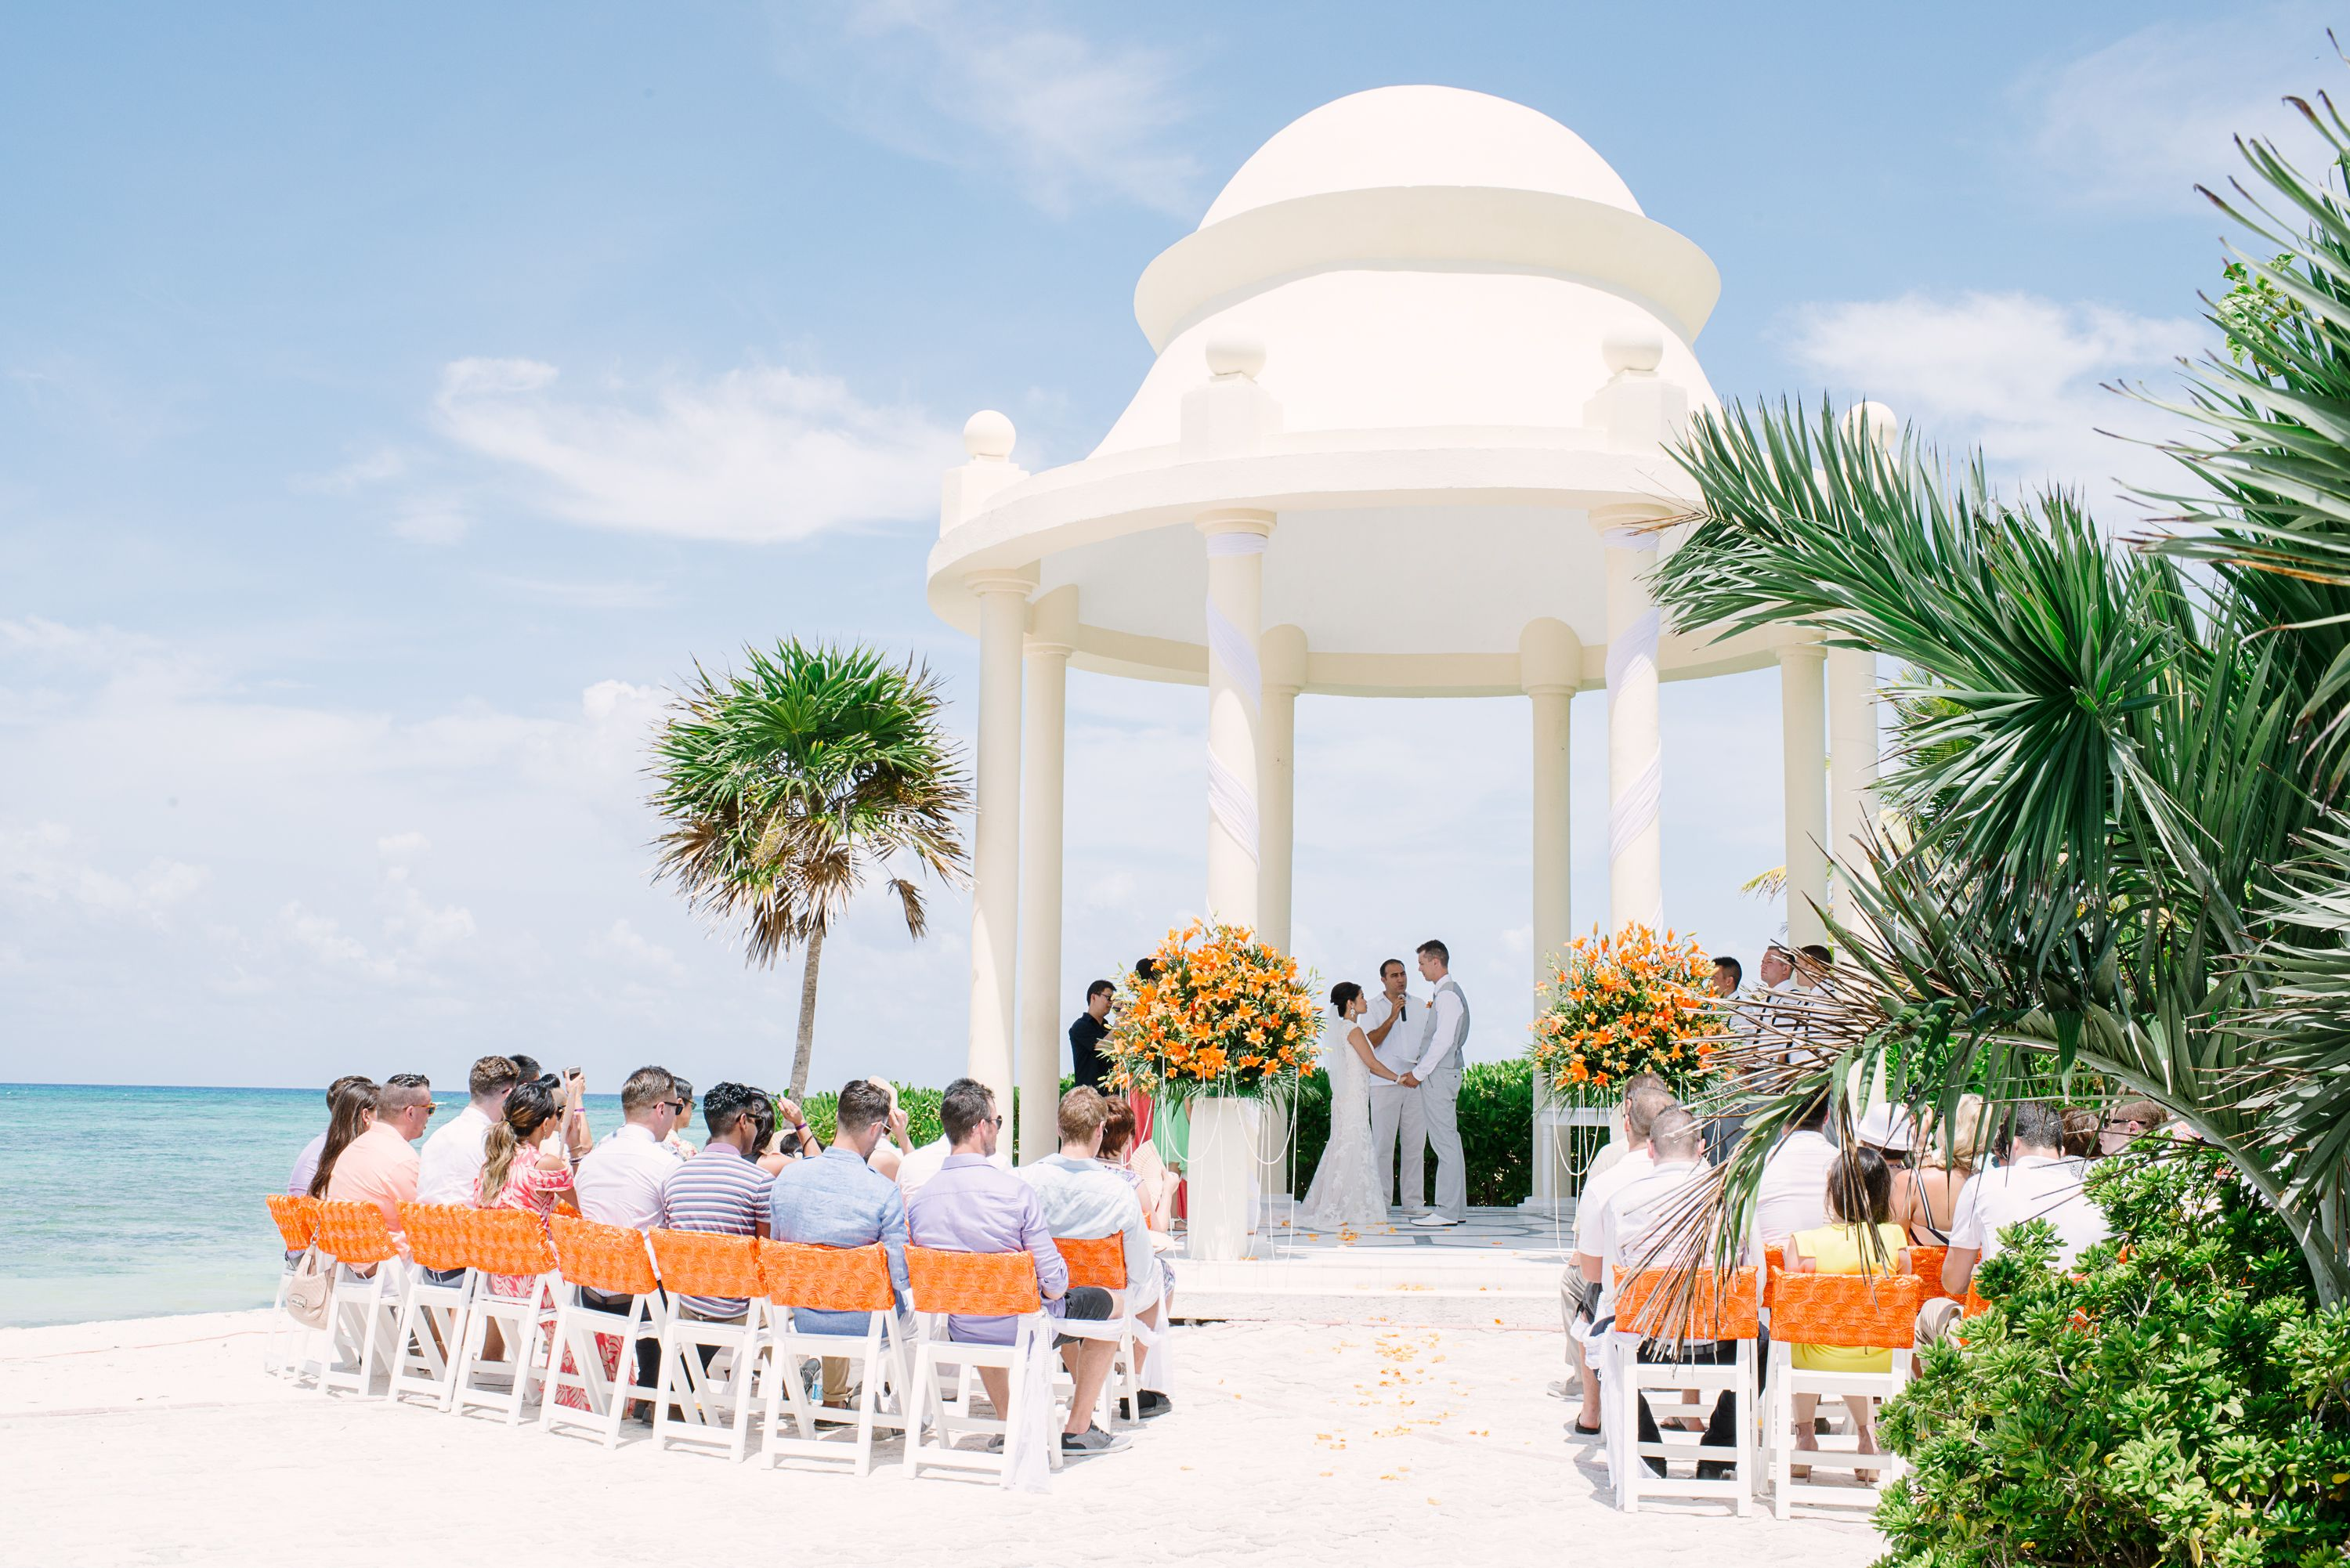 Destination wedding packages all inclusive riviera maya for All inclusive wedding packages